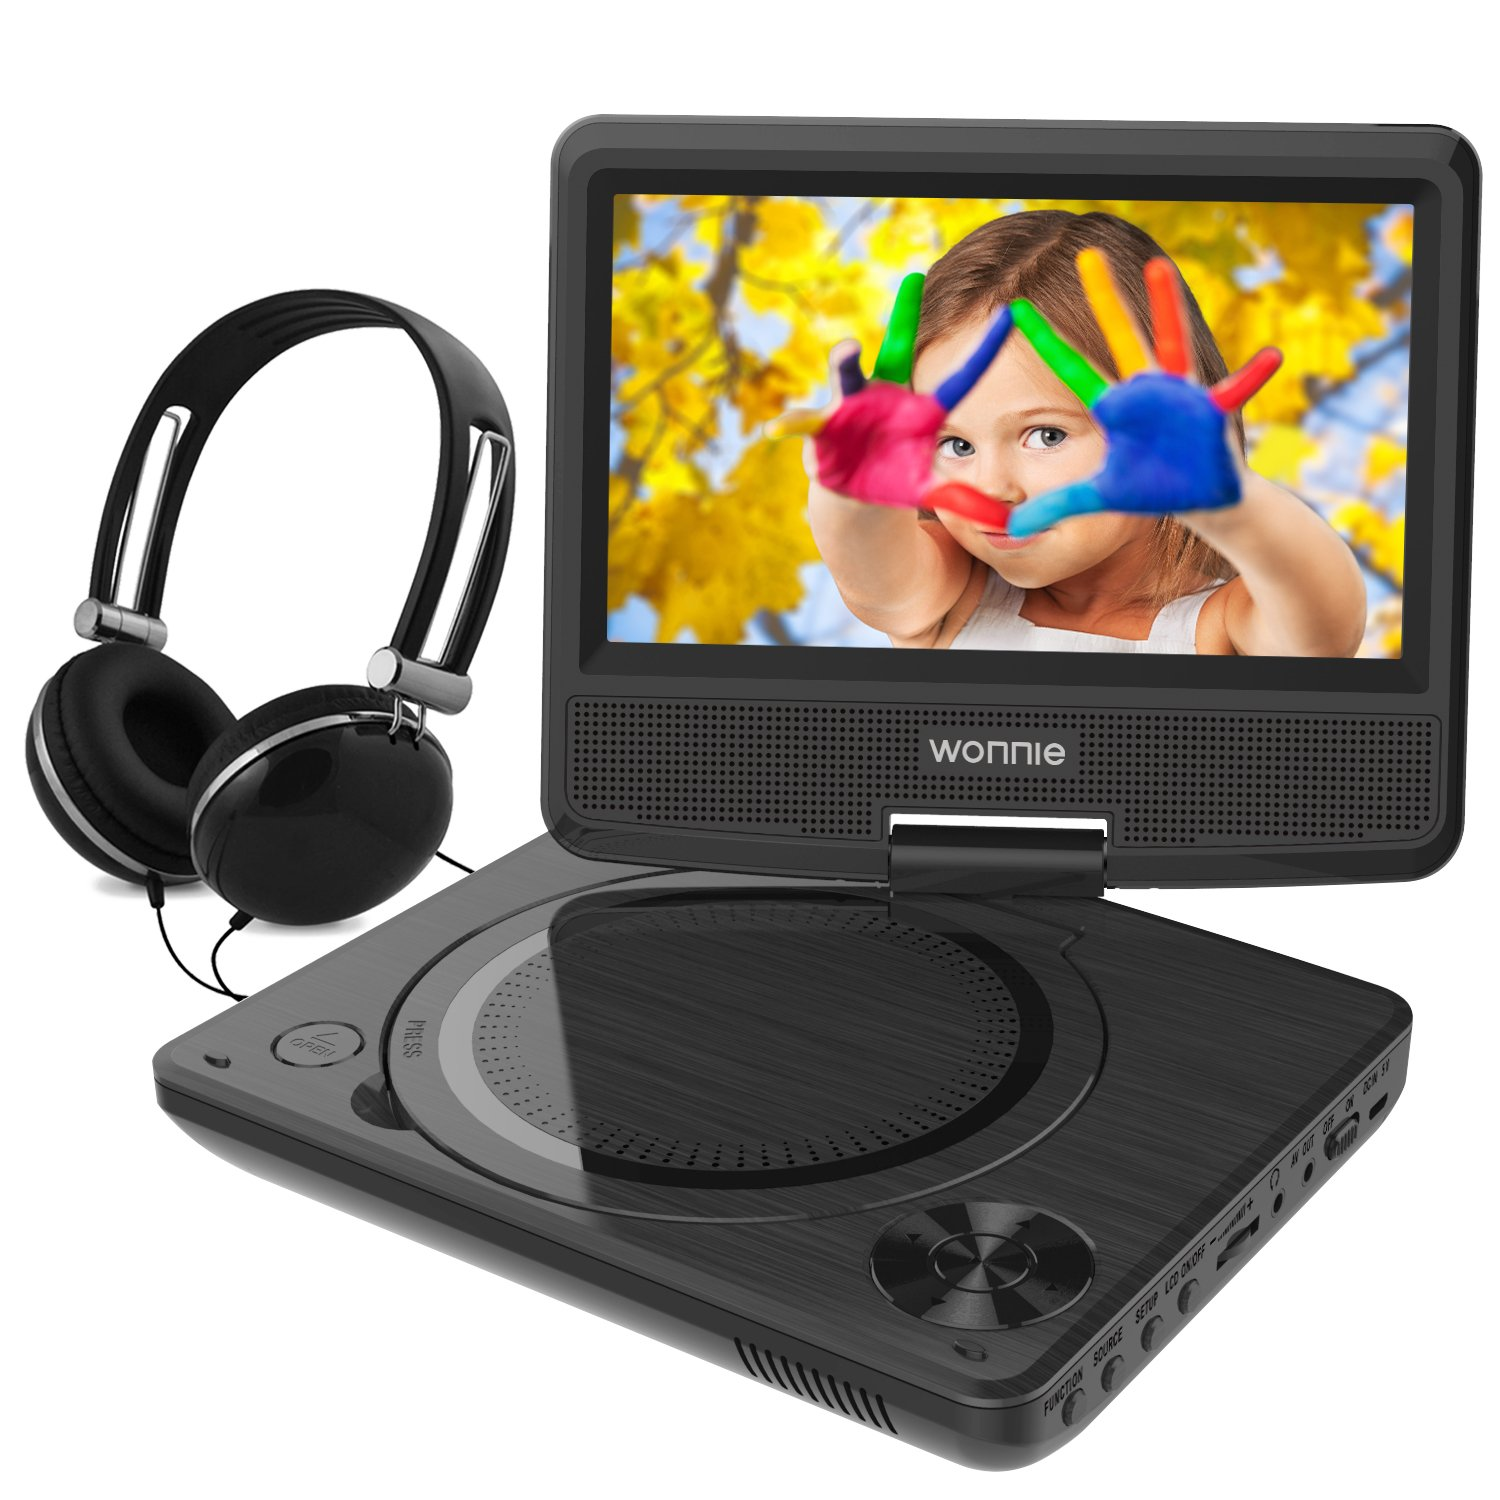 WONNIE 7.5 Inch Portable DVD Player with Swivel Screen, USB / SD Slot and 4 Hours Rechargeable Battery, for Kids ( Black )